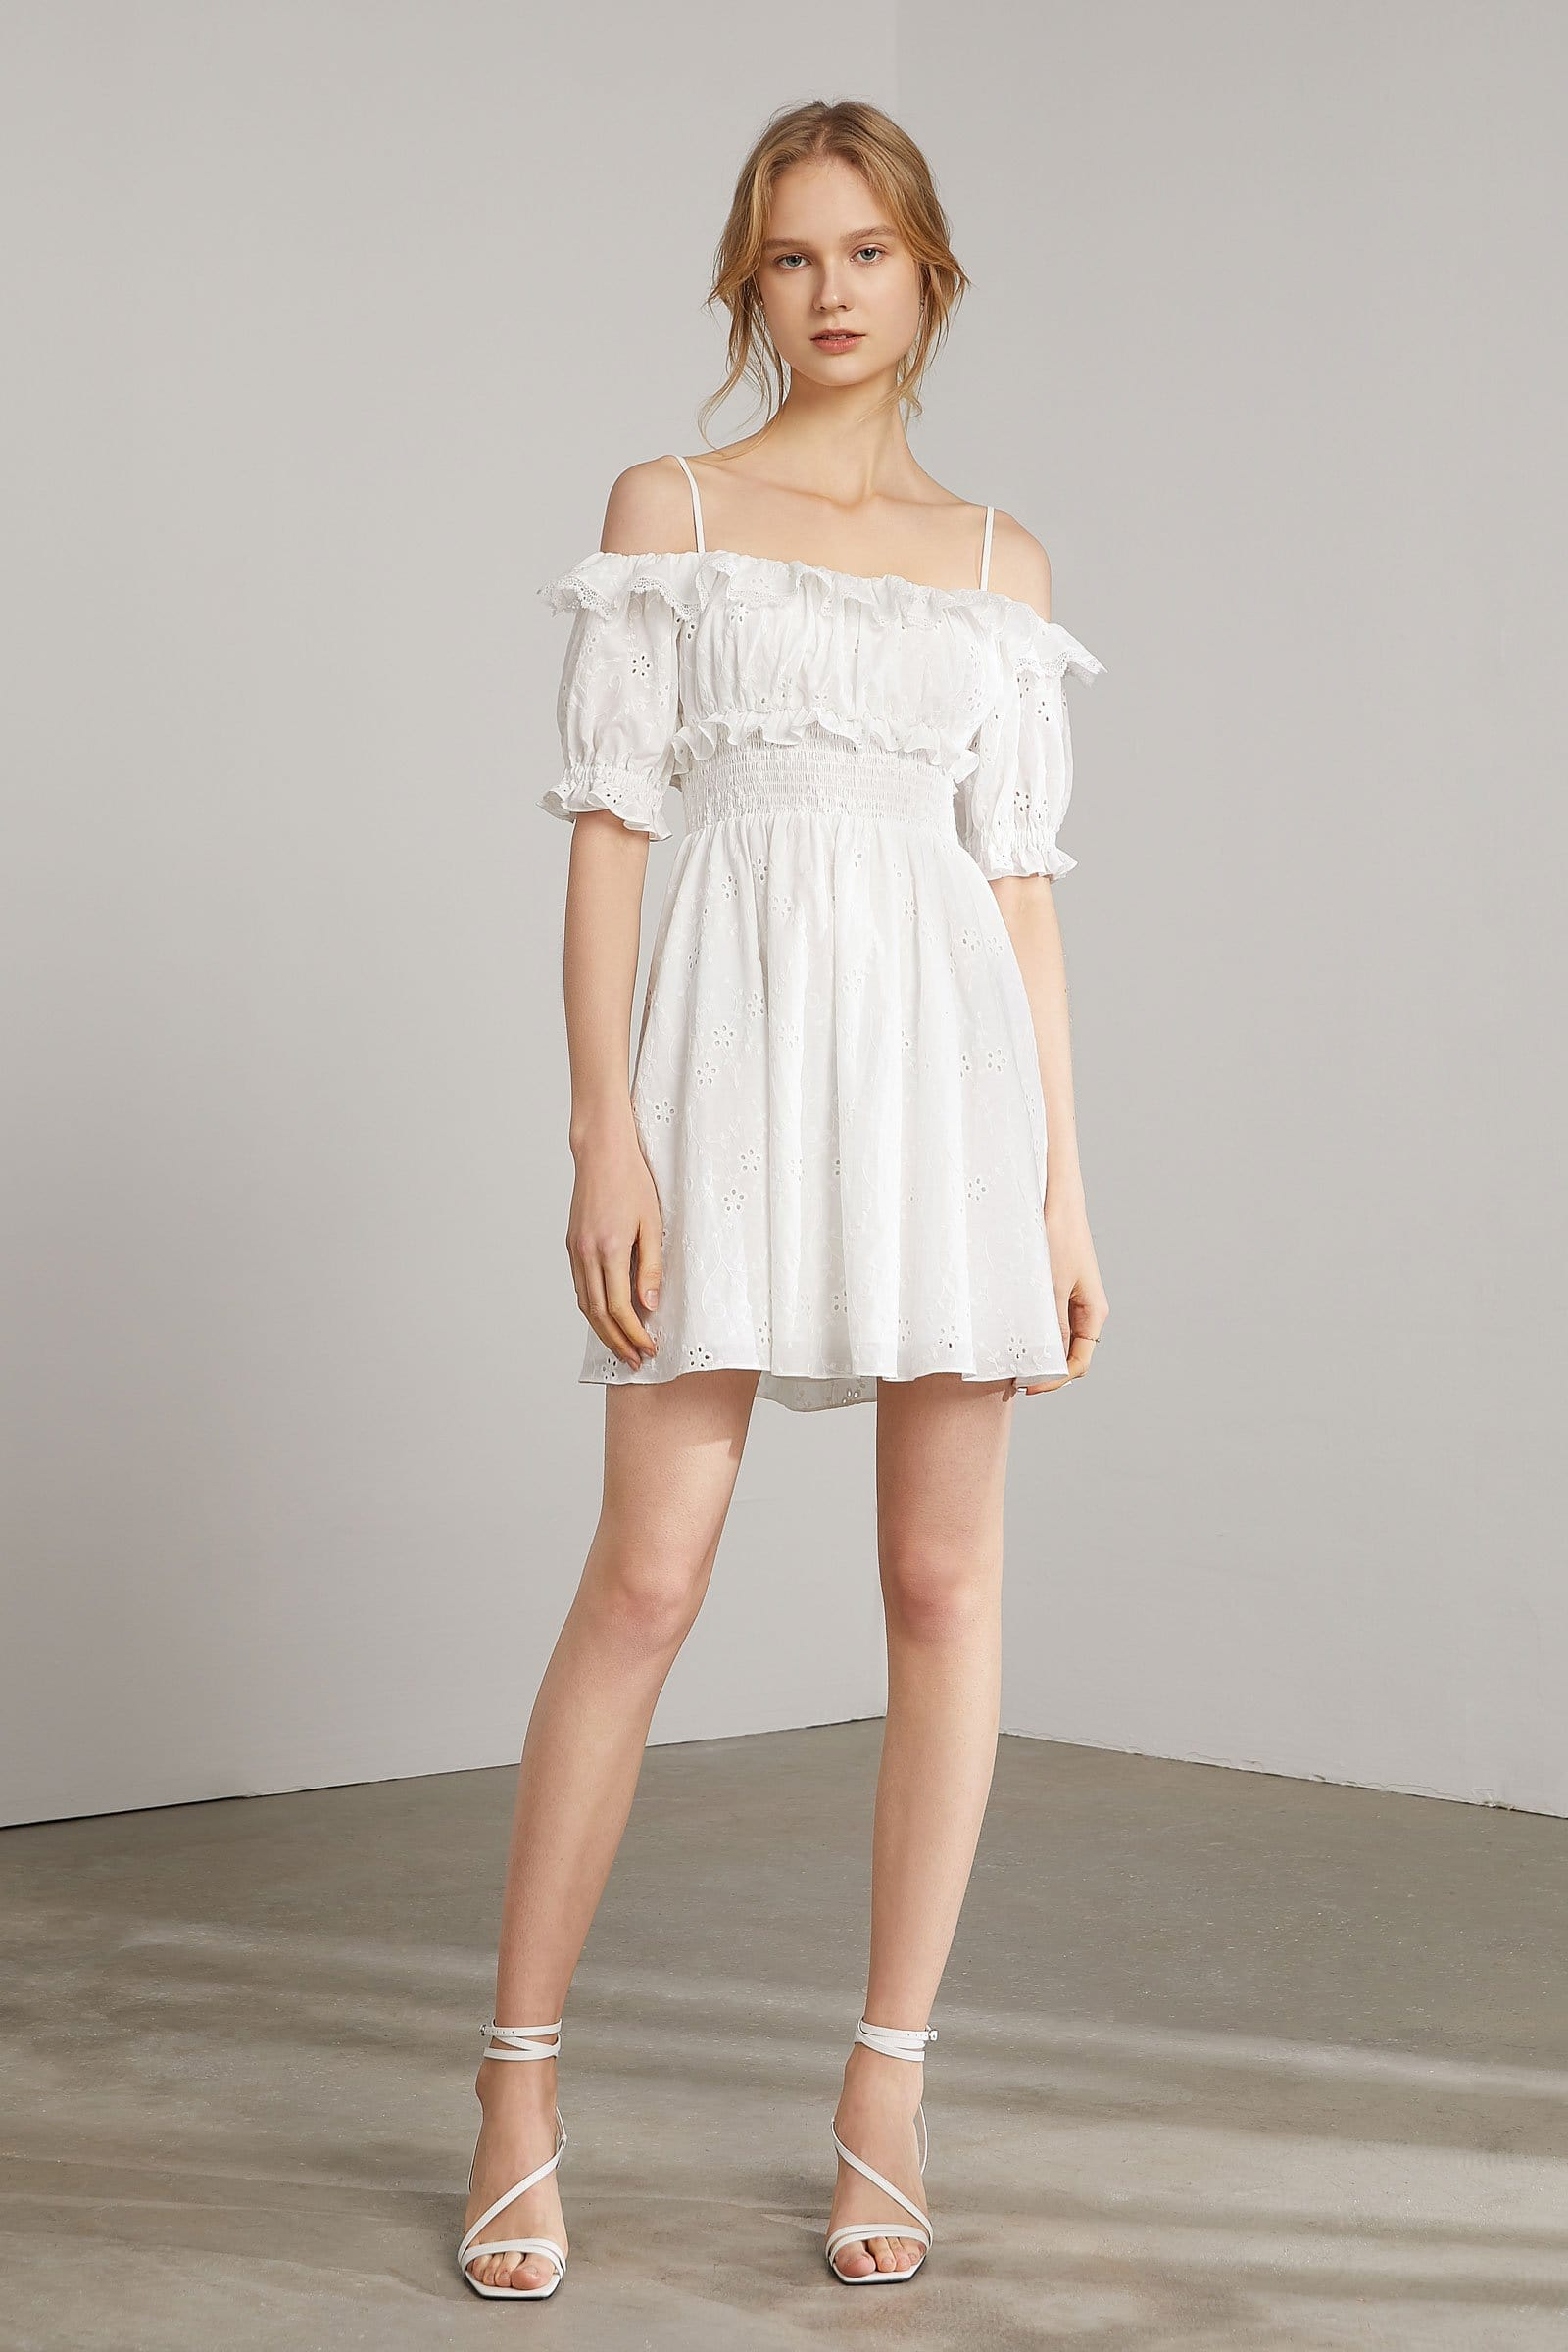 Maybelle White Eyelet Off-Shoulder Mini Dress